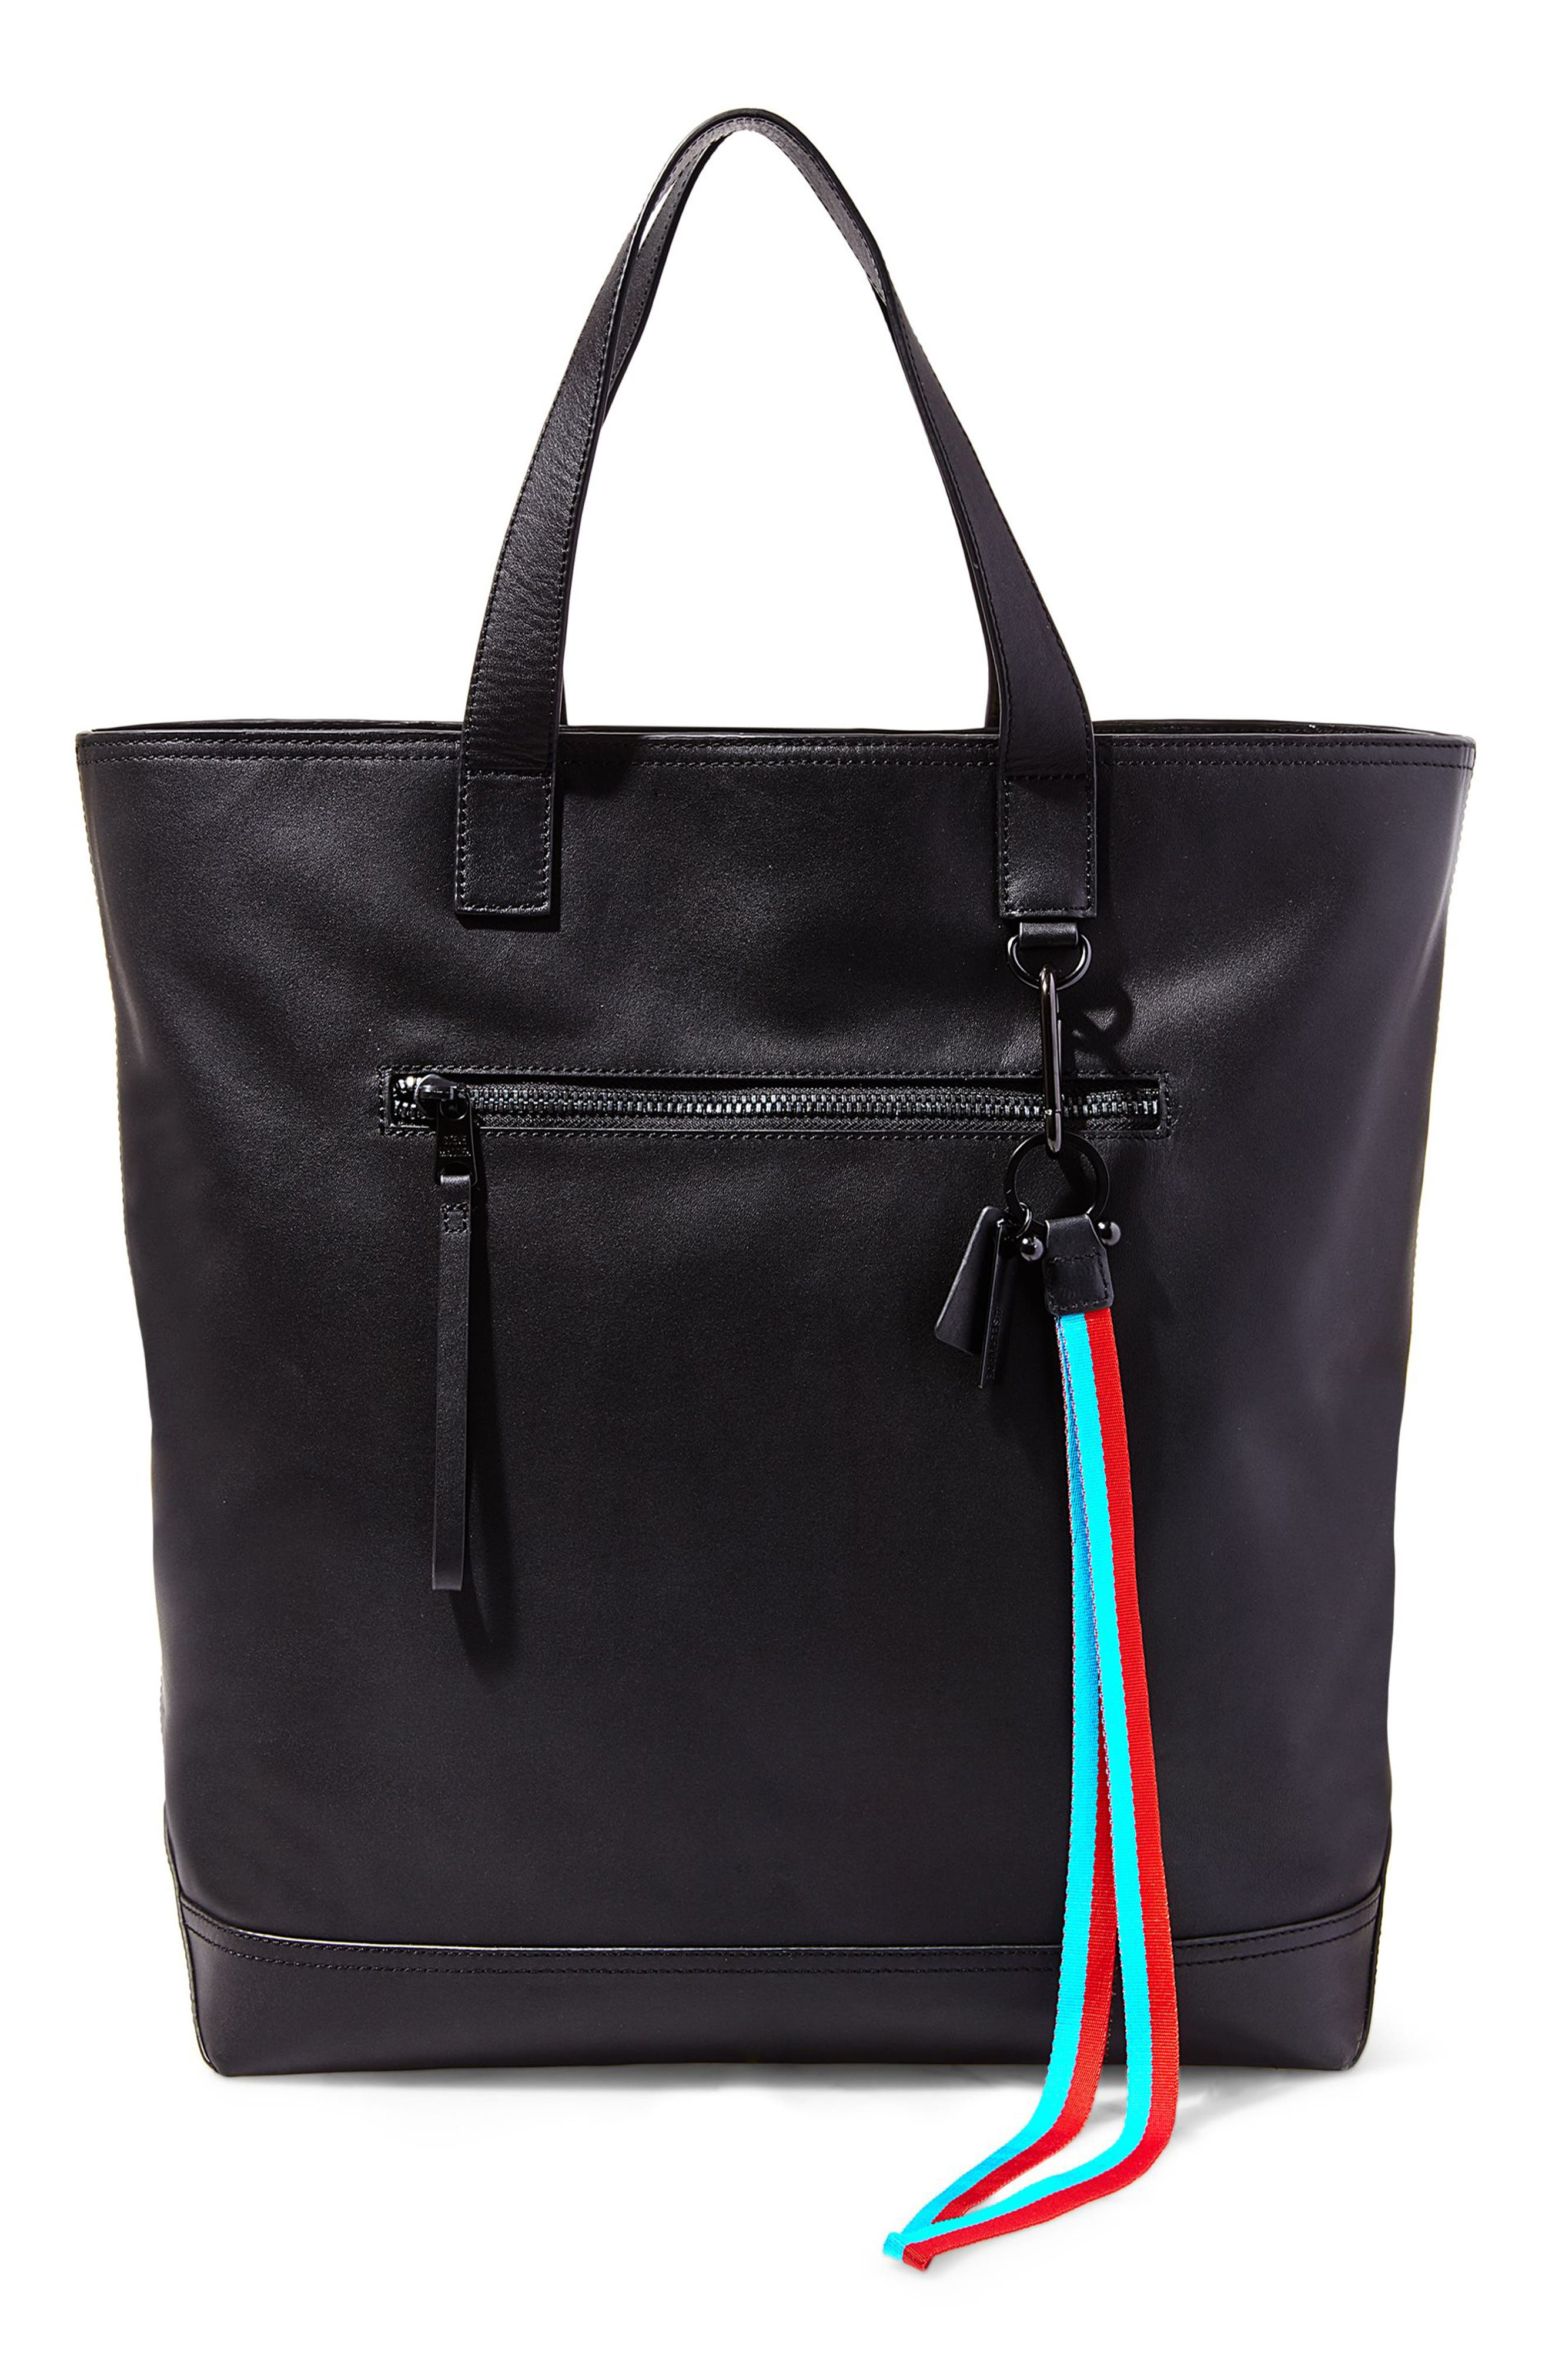 GQ x Steve Madden Leather Tote Bag,                         Main,                         color,